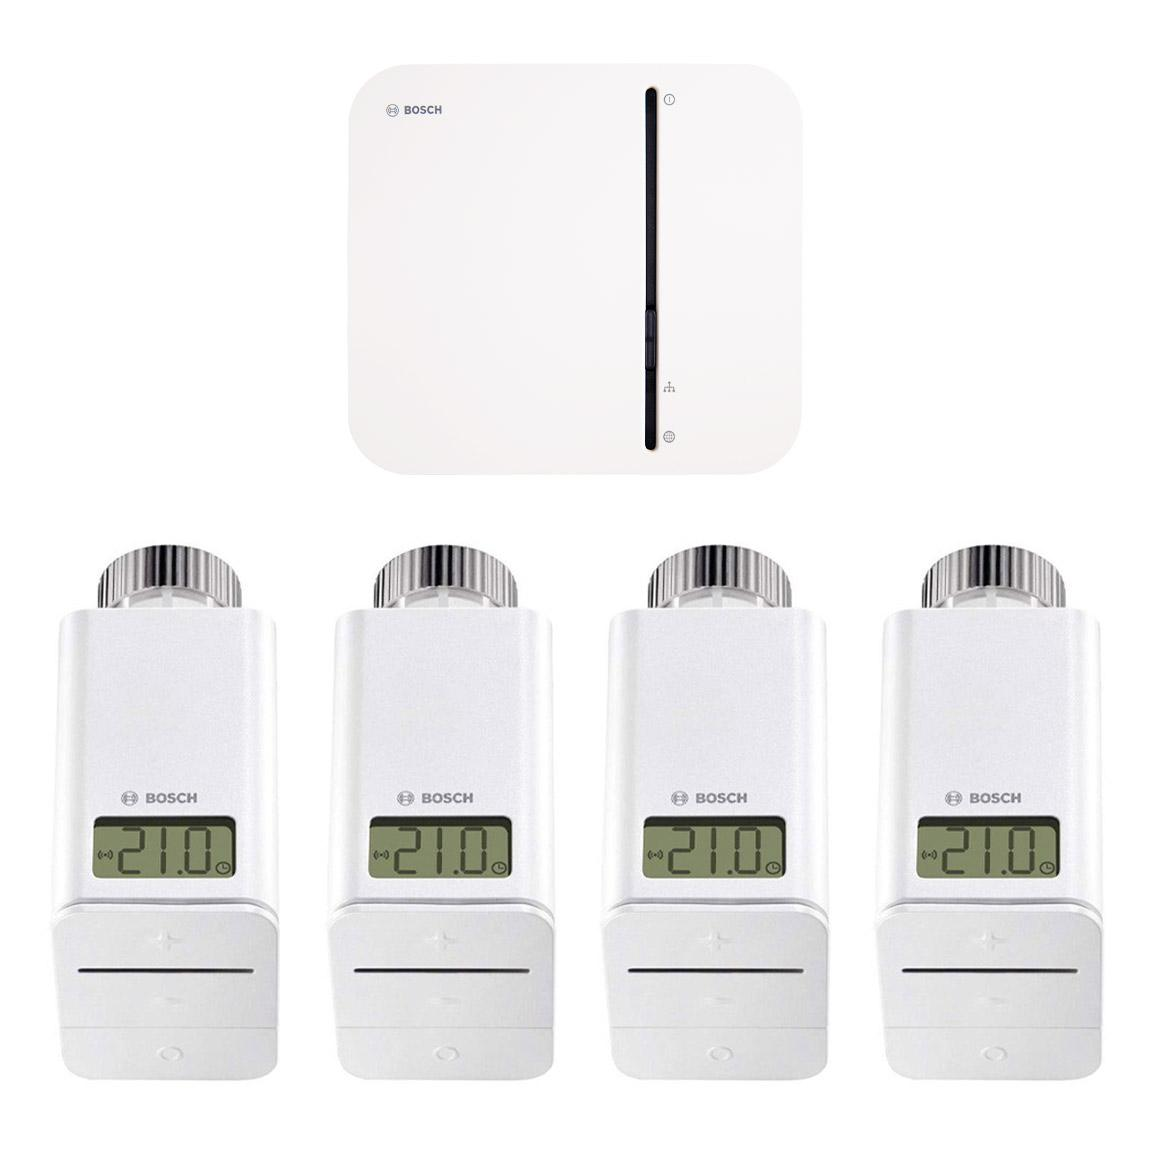 Bosch Smart Home - Starter Set Heizung mit 4 Thermostaten